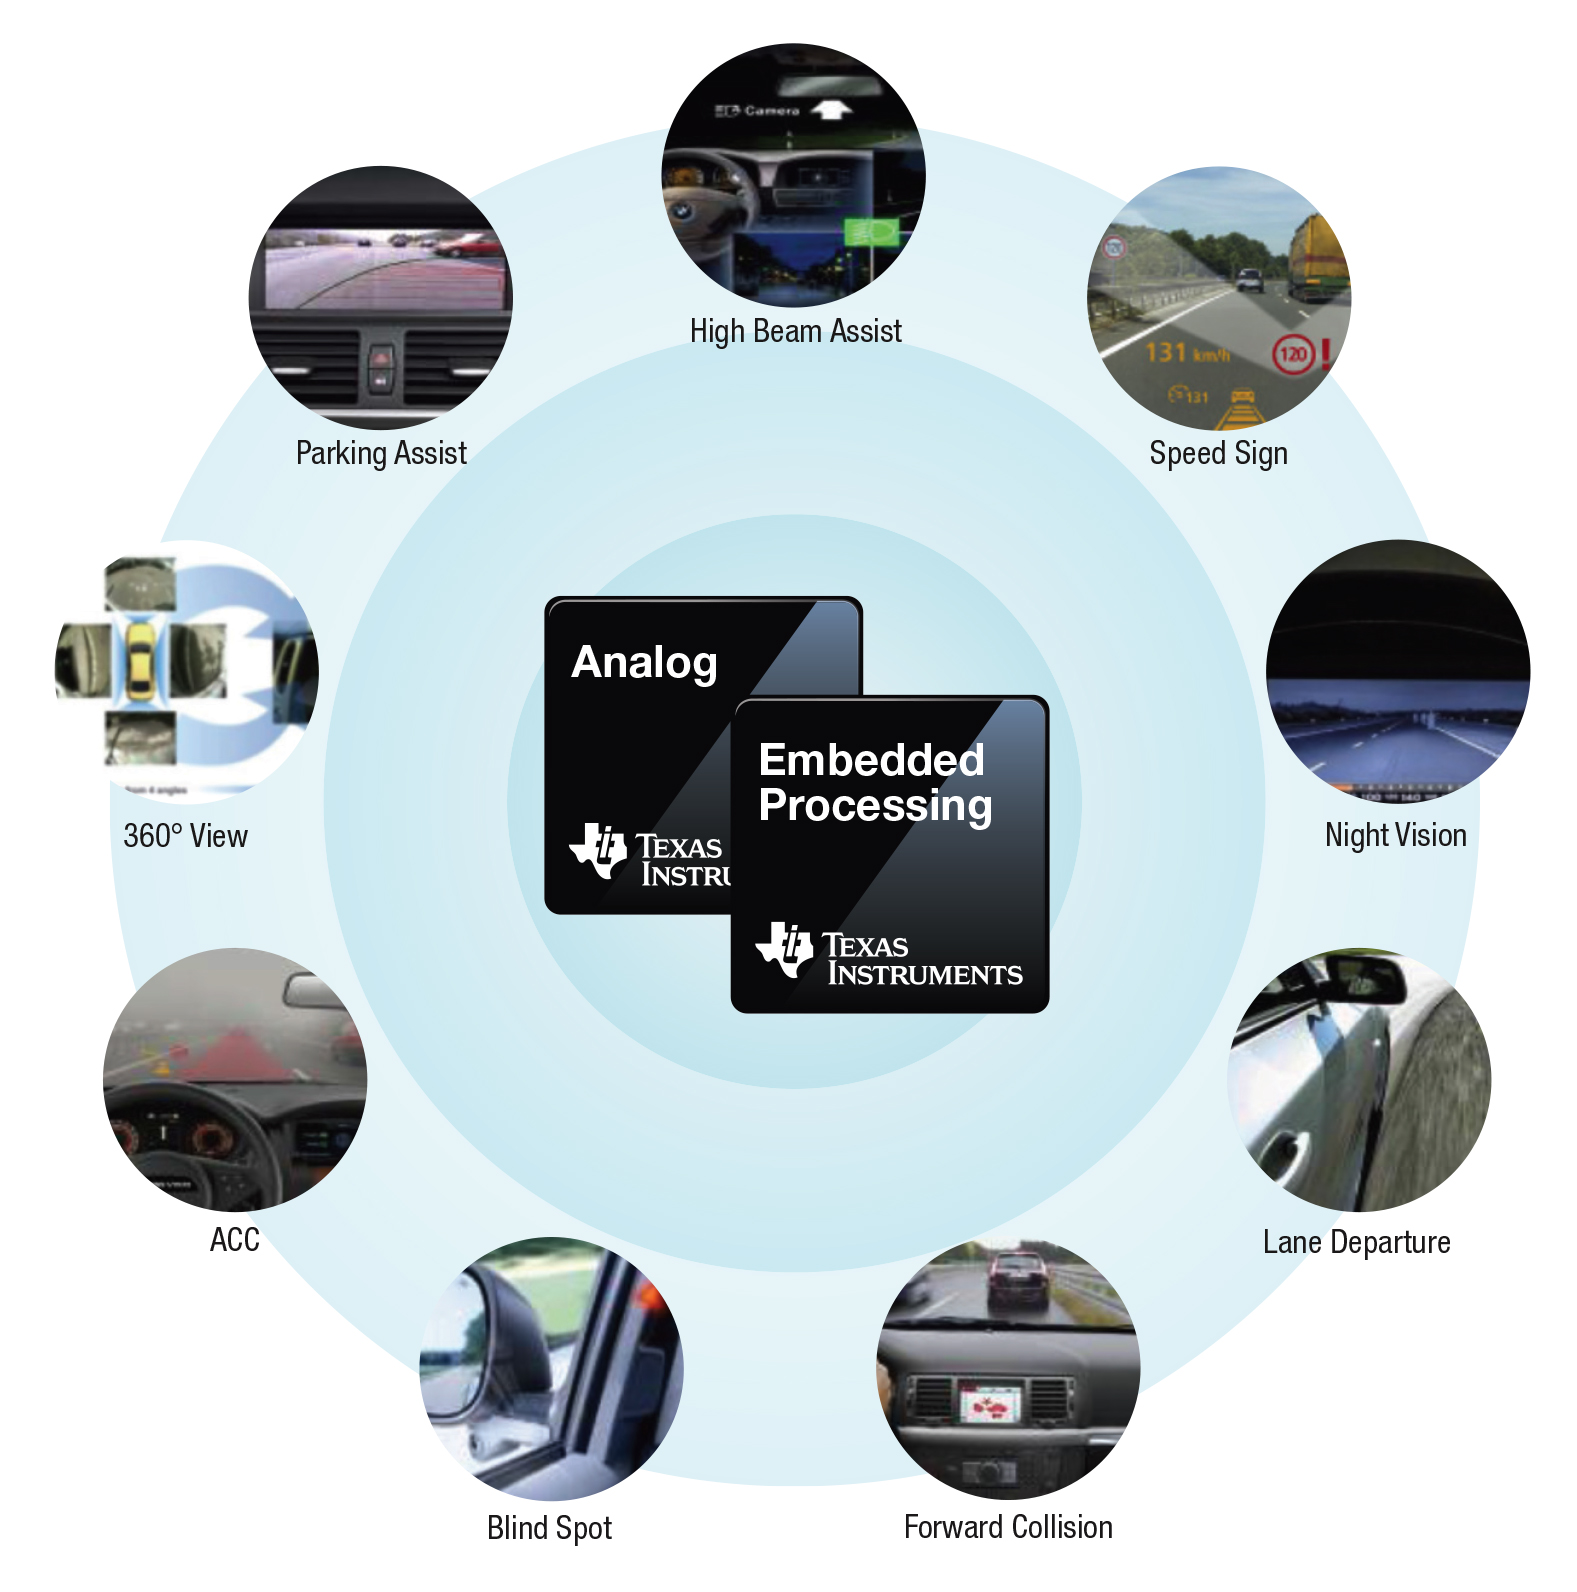 Advanced Safety And Driver Assistance Systems Paves The